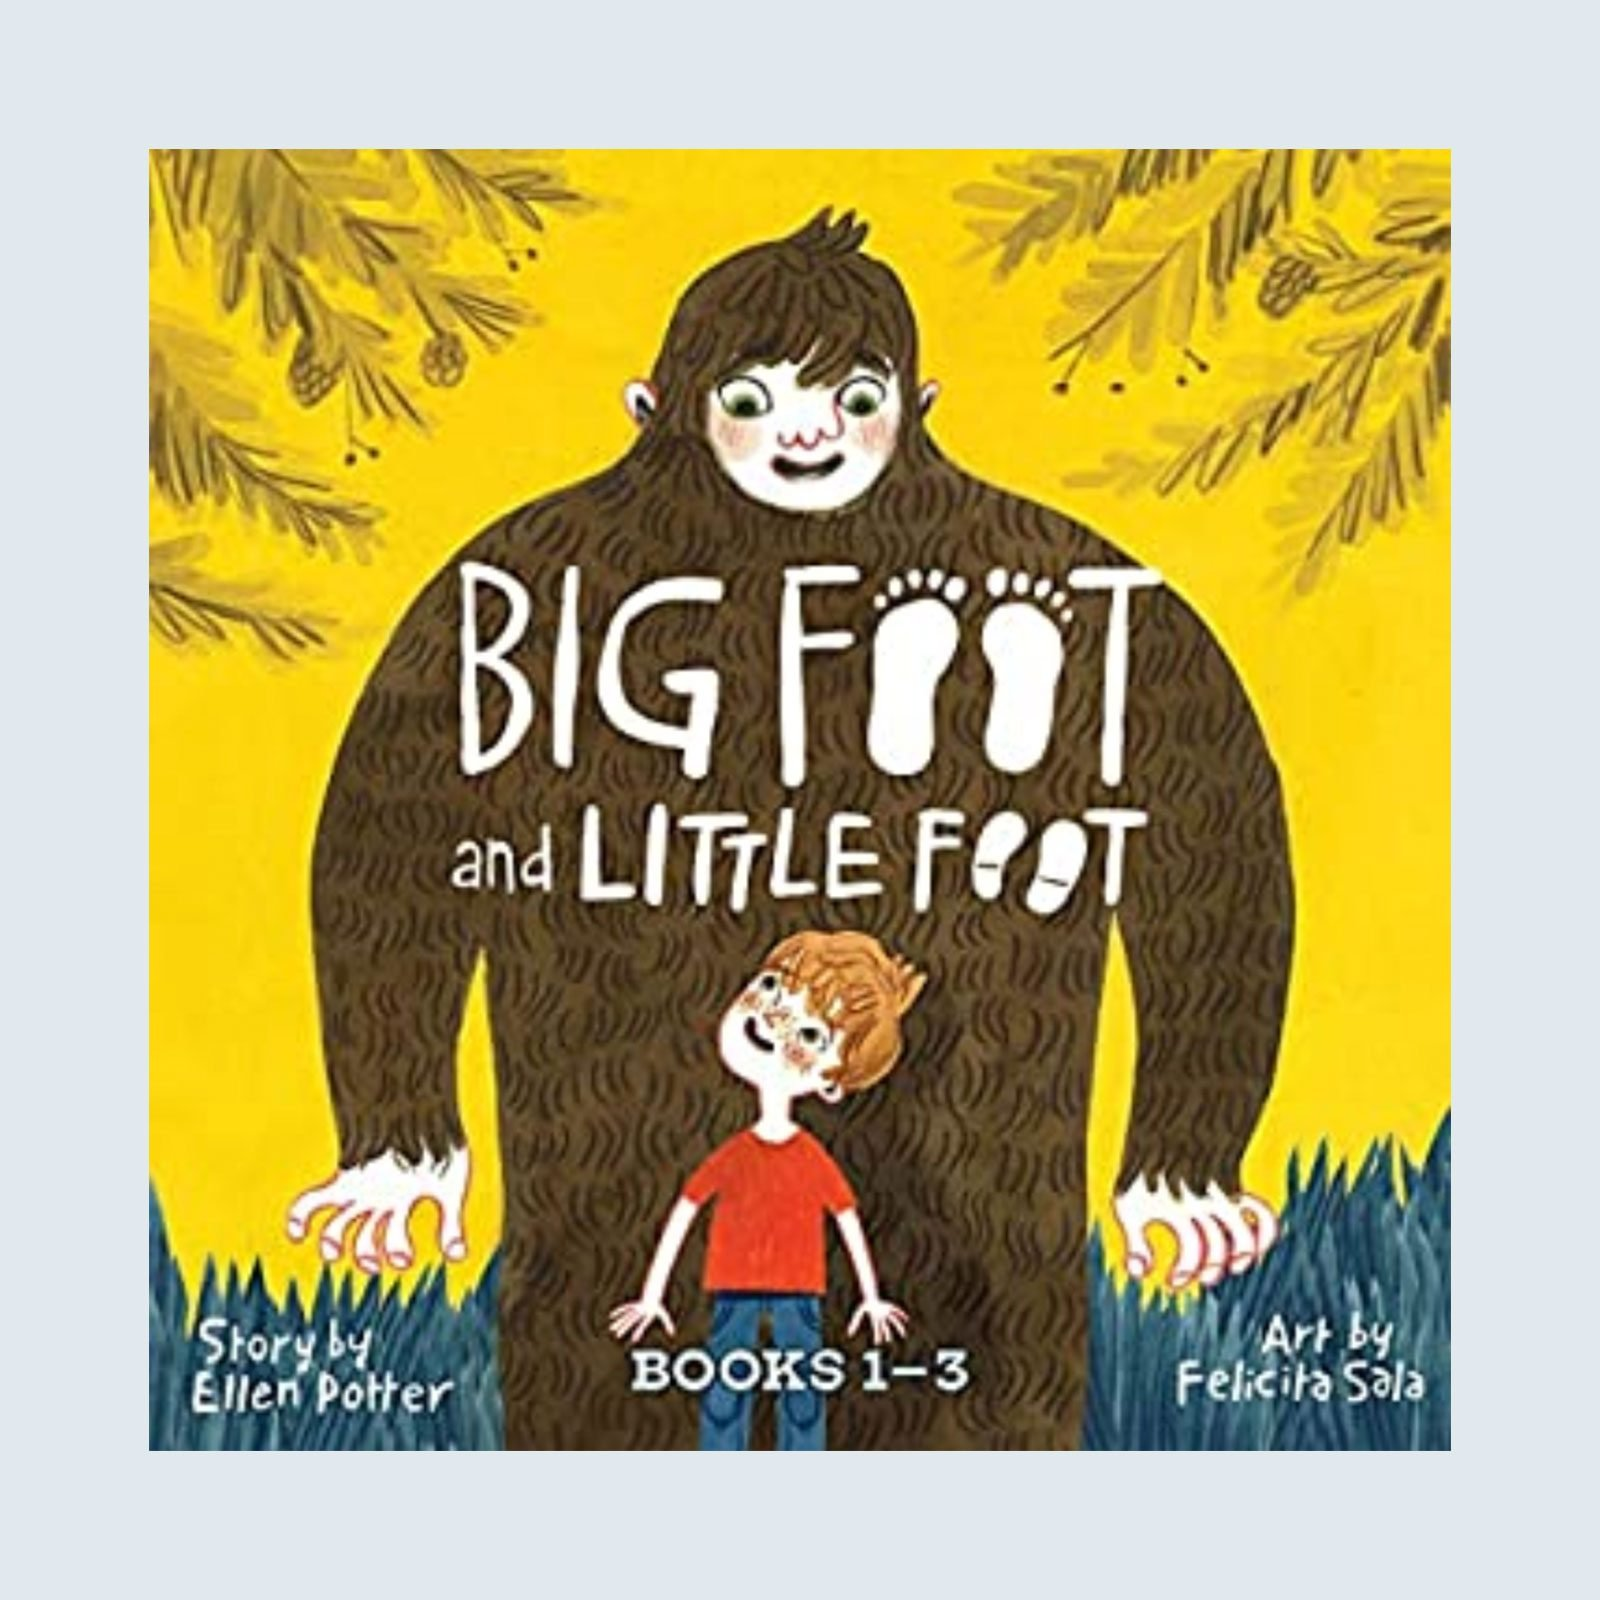 The Big Foot and Little Foot Collection